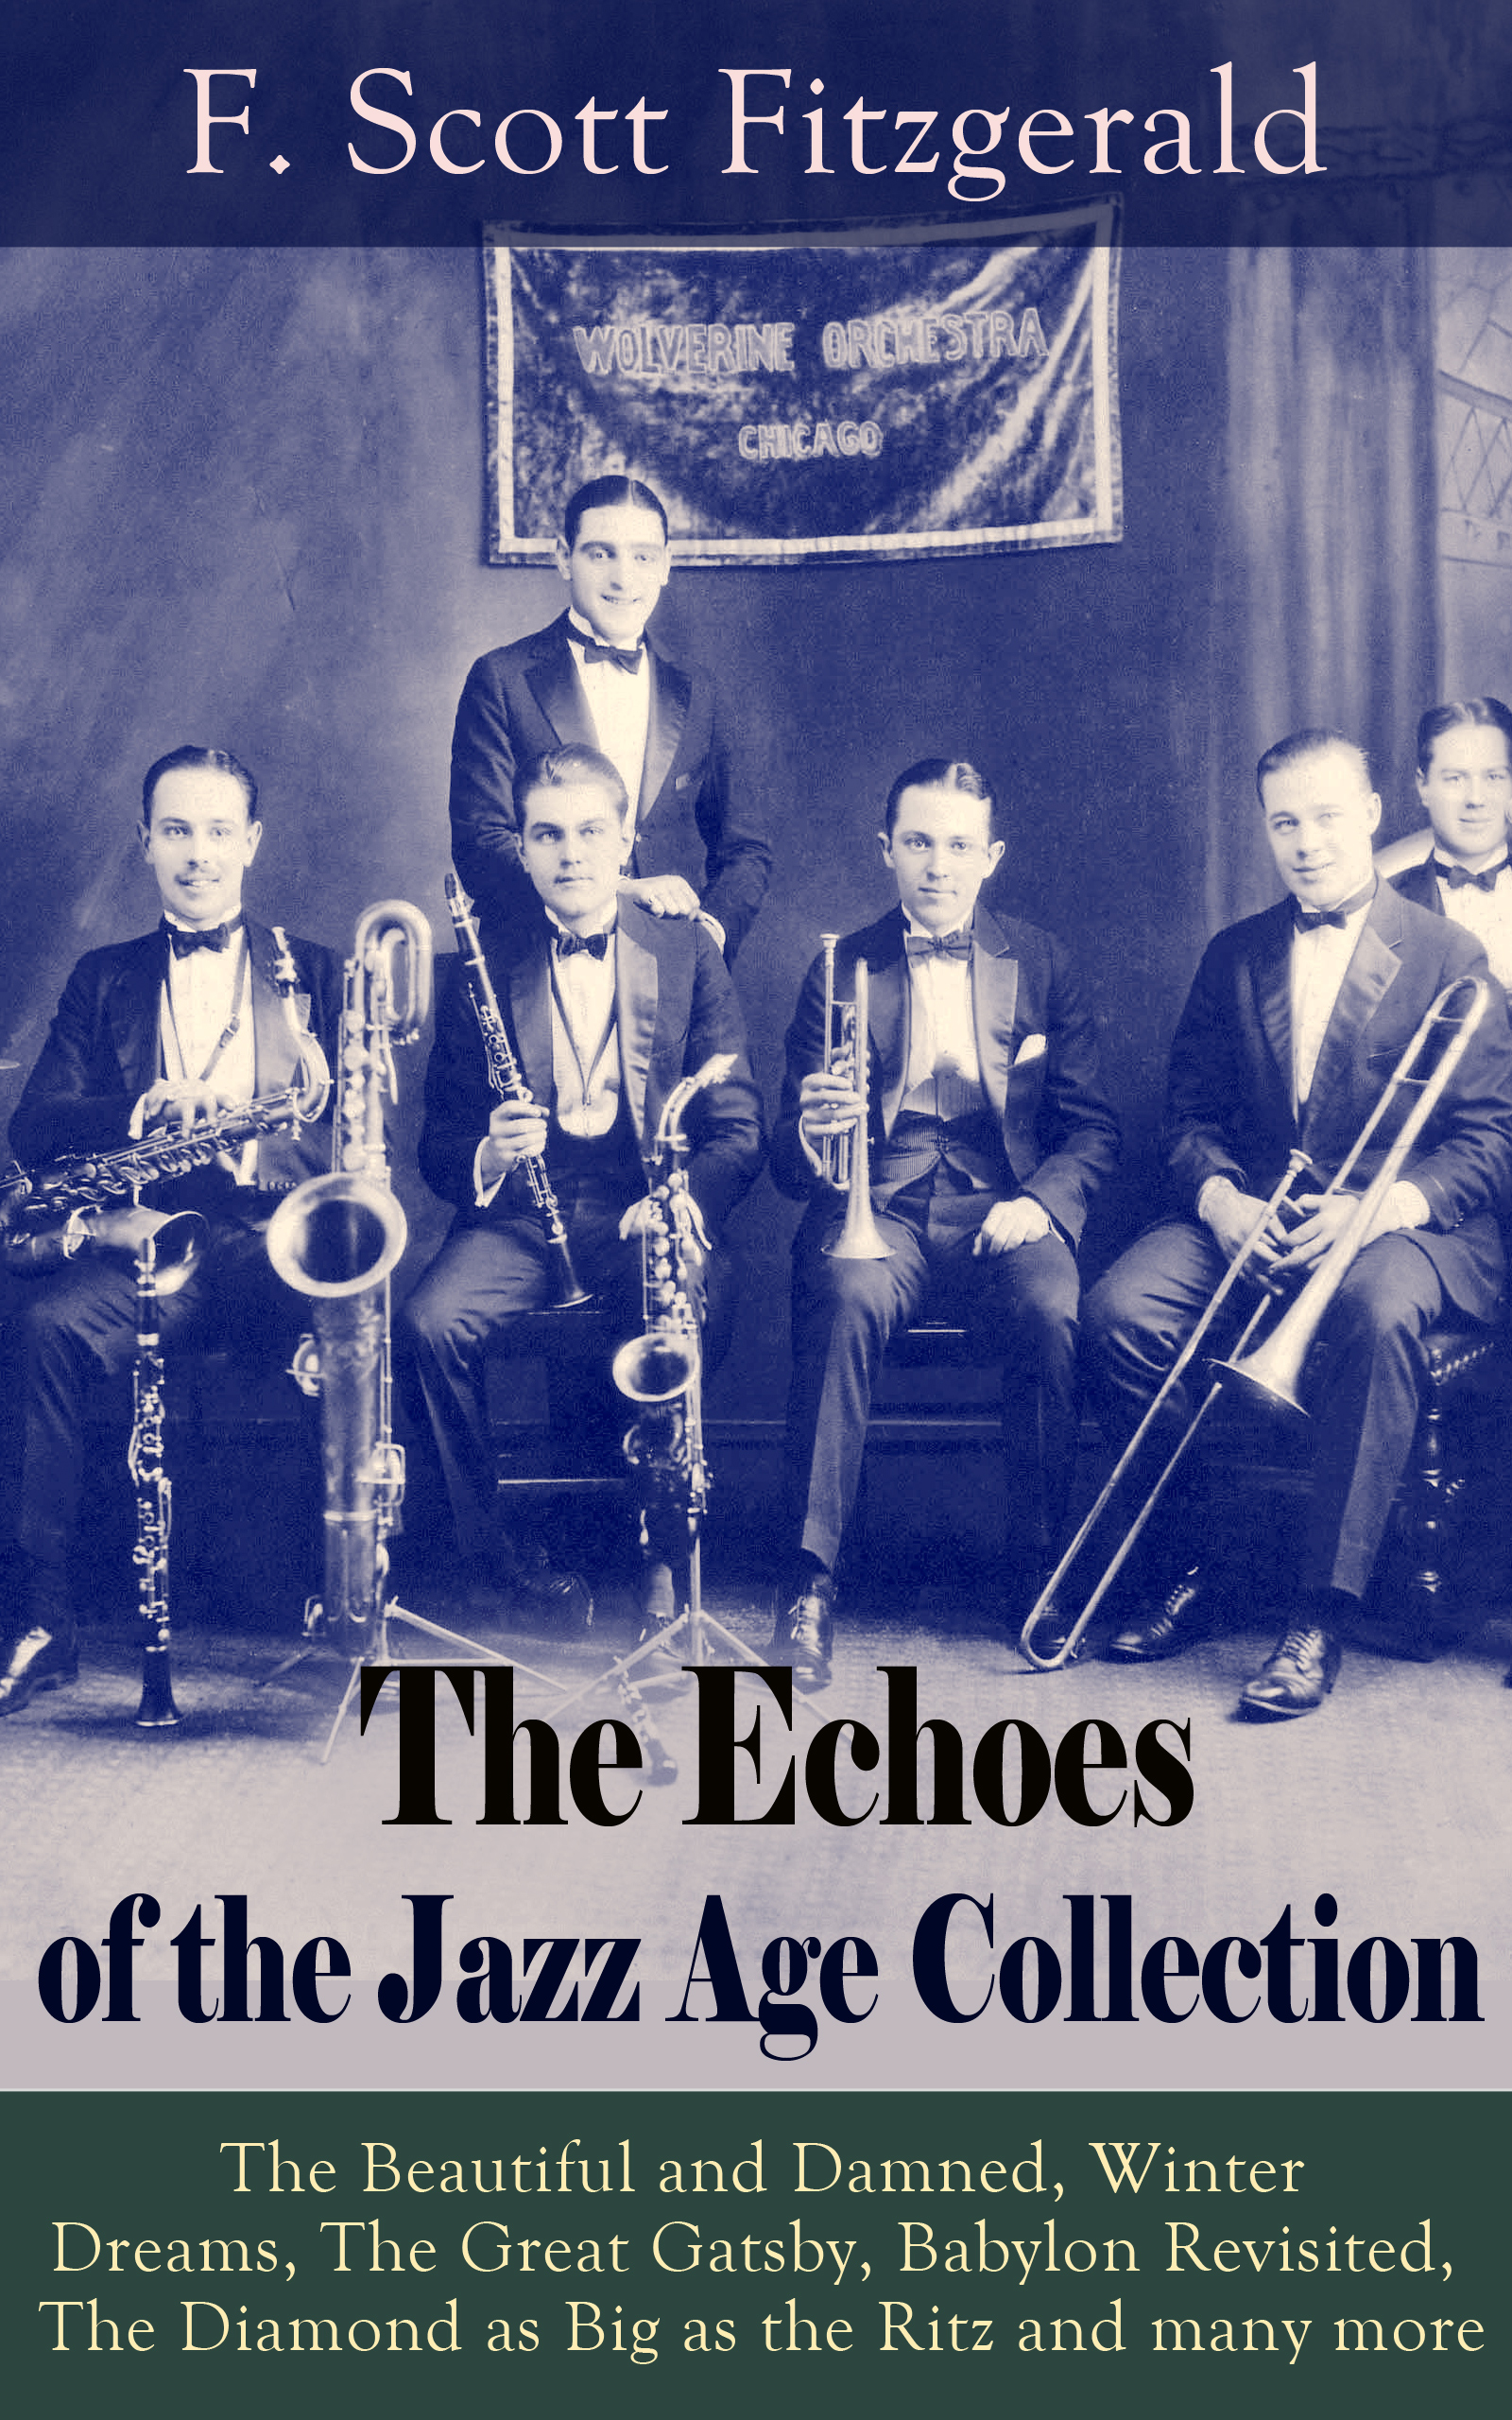 Фрэнсис Скотт Фицджеральд The Echoes of the Jazz Age Collection: The Beautiful and Damned, Winter Dreams, The Great Gatsby, Babylon Revisited, The Diamond as Big as the Ritz and many more malia malia ripples echoes of dreams lp 7